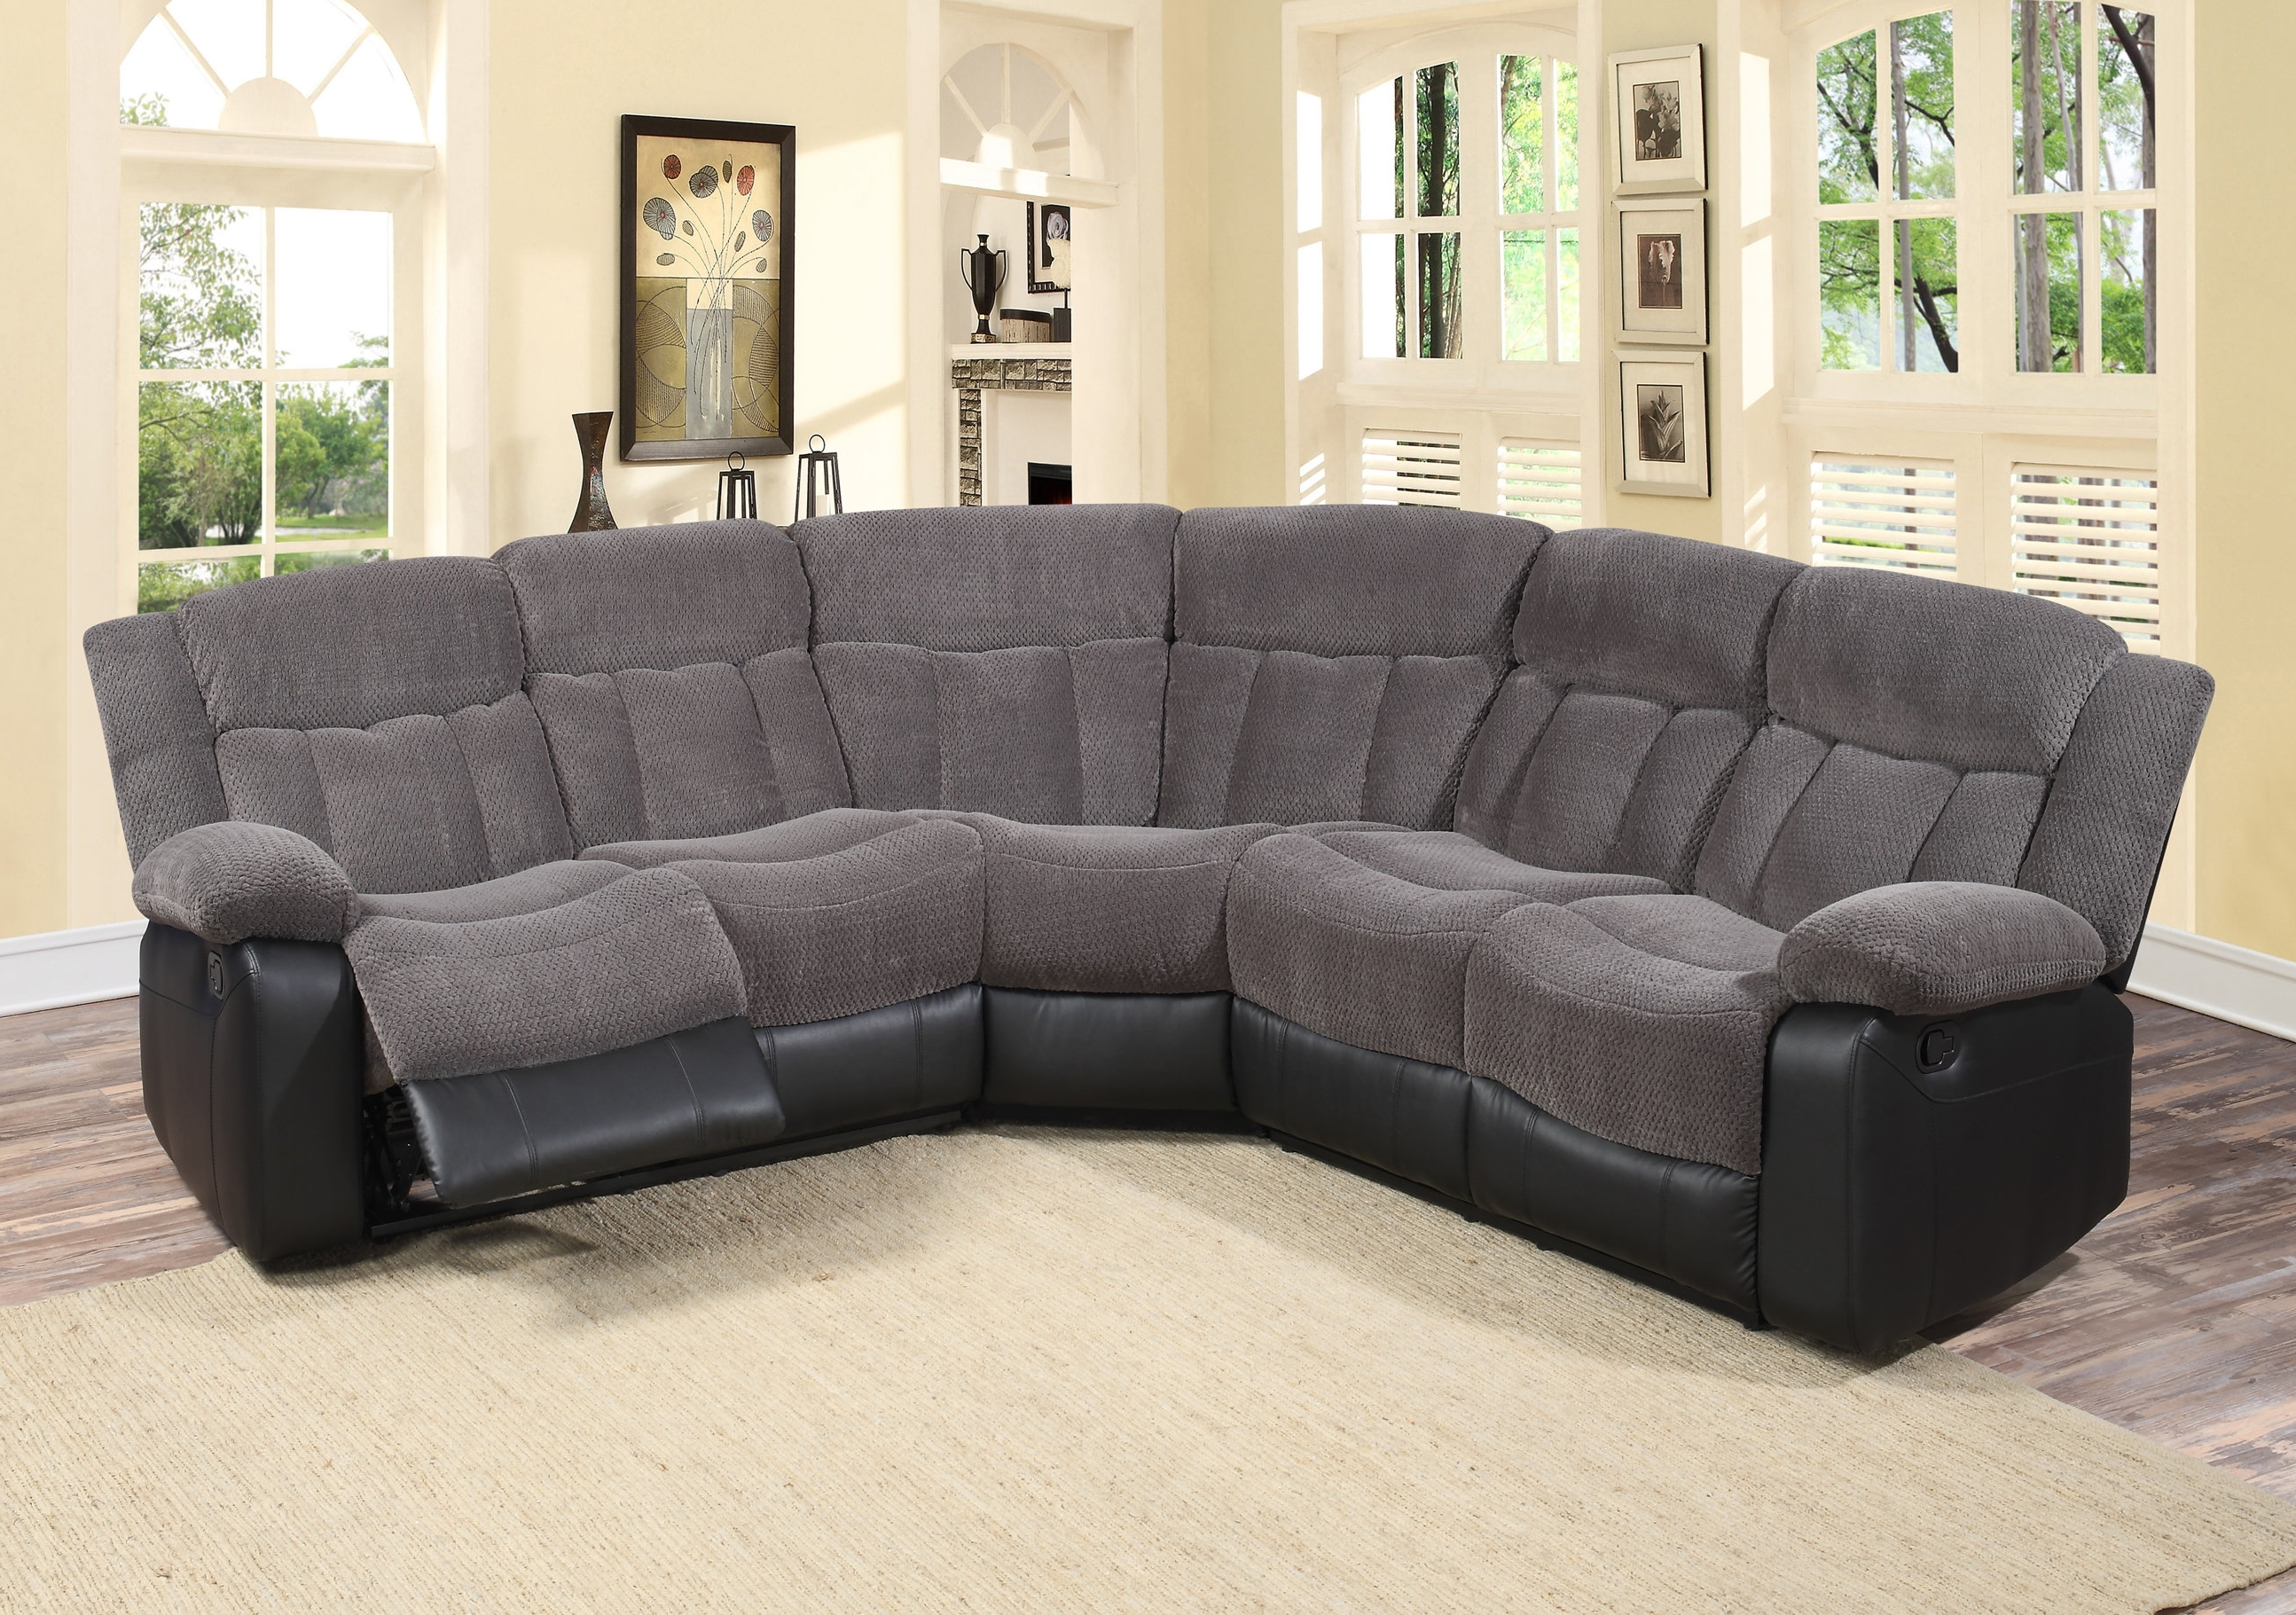 Popular Reclining Sectionals You'll Love (View 12 of 20)